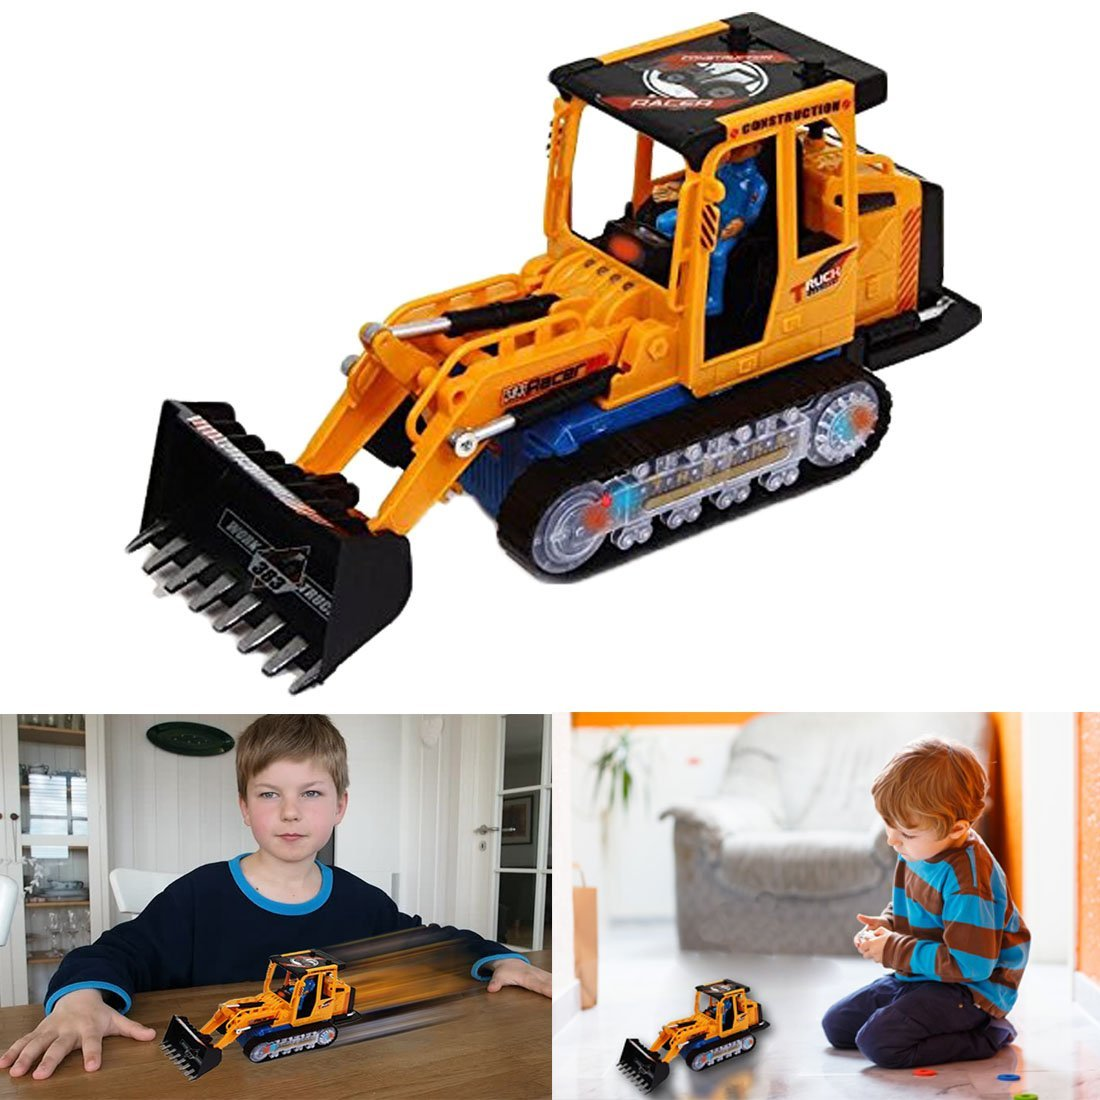 Dazzling Toys Bruder Construction Loader Truck Battery Operated Riding Tractor